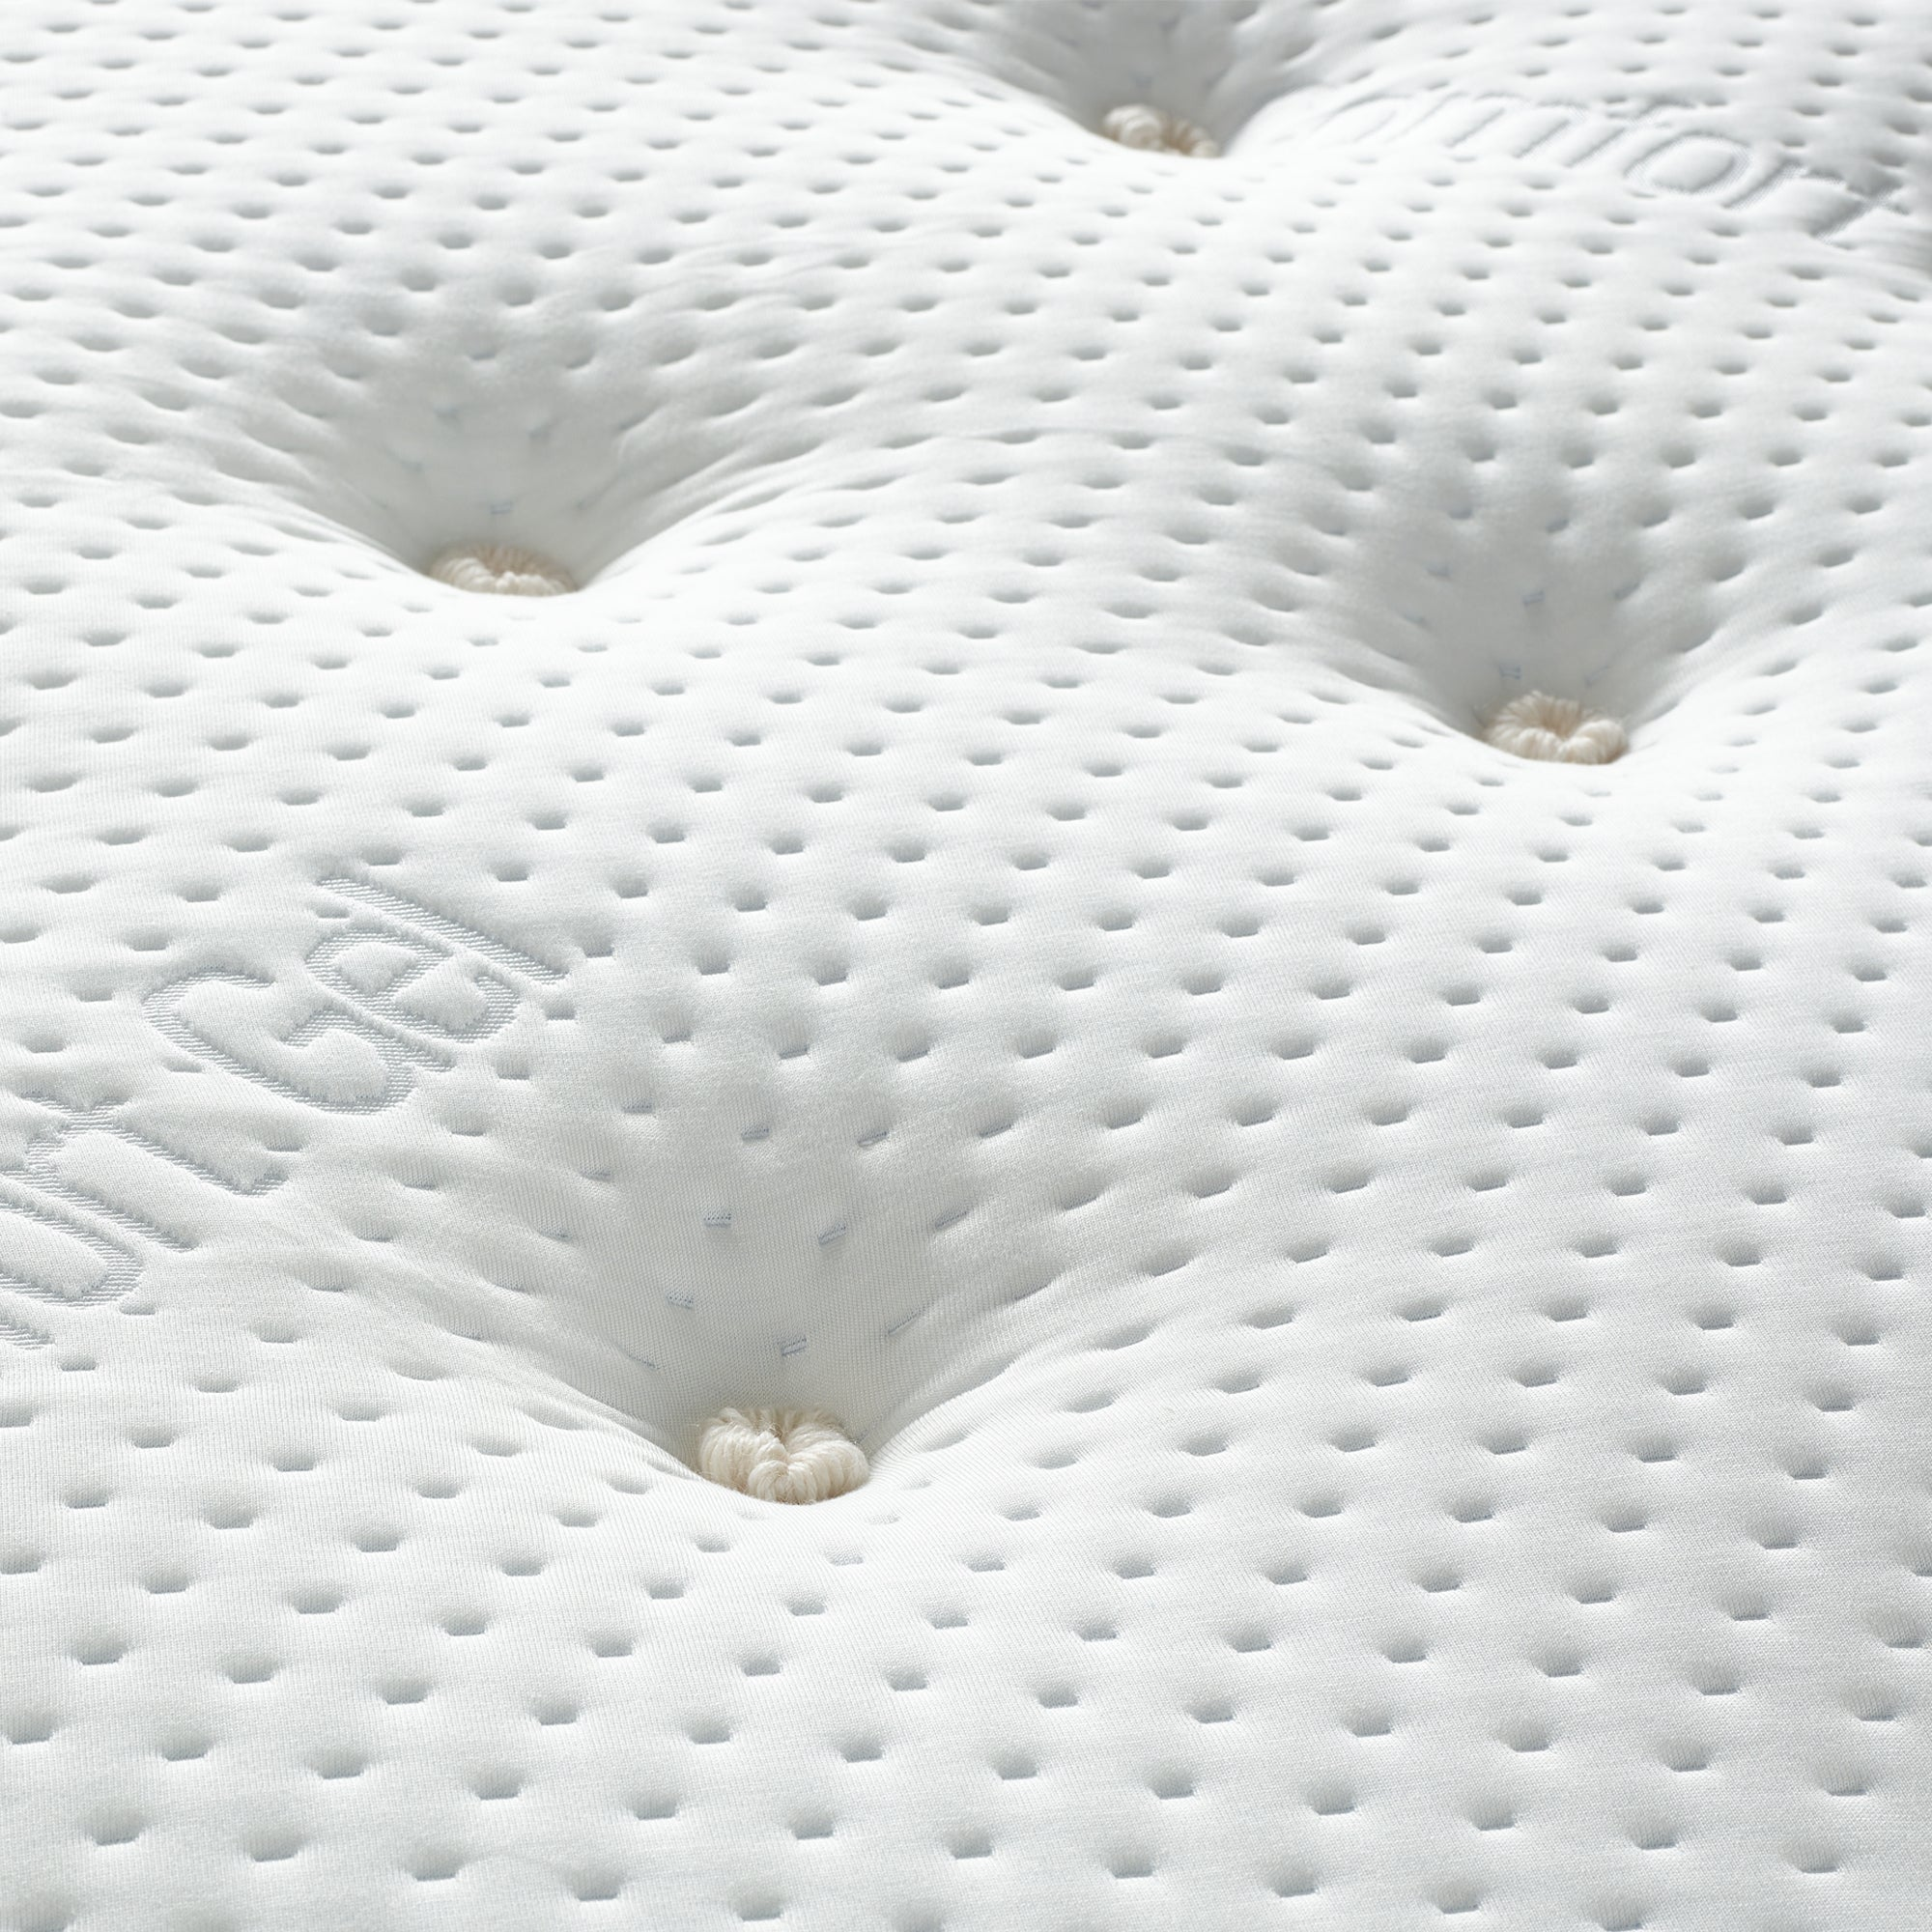 Pocket Gel 1000 Mattress Top Detailing